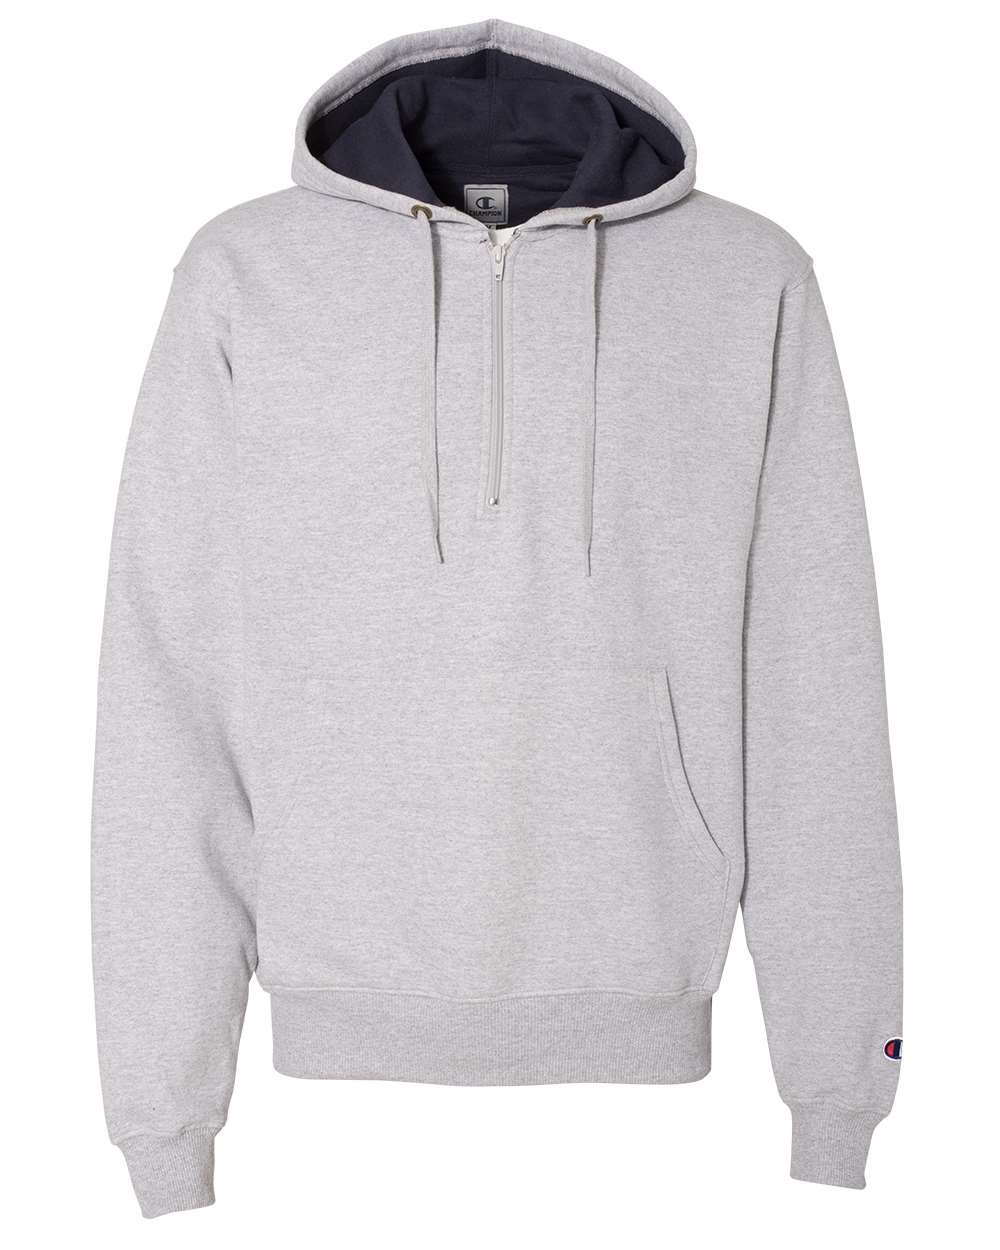 Champion-Mens-Cotton-Max-Hooded-Quarter-Zip-Sweatshirt-Pullover-S185-up-to-3XL miniature 12